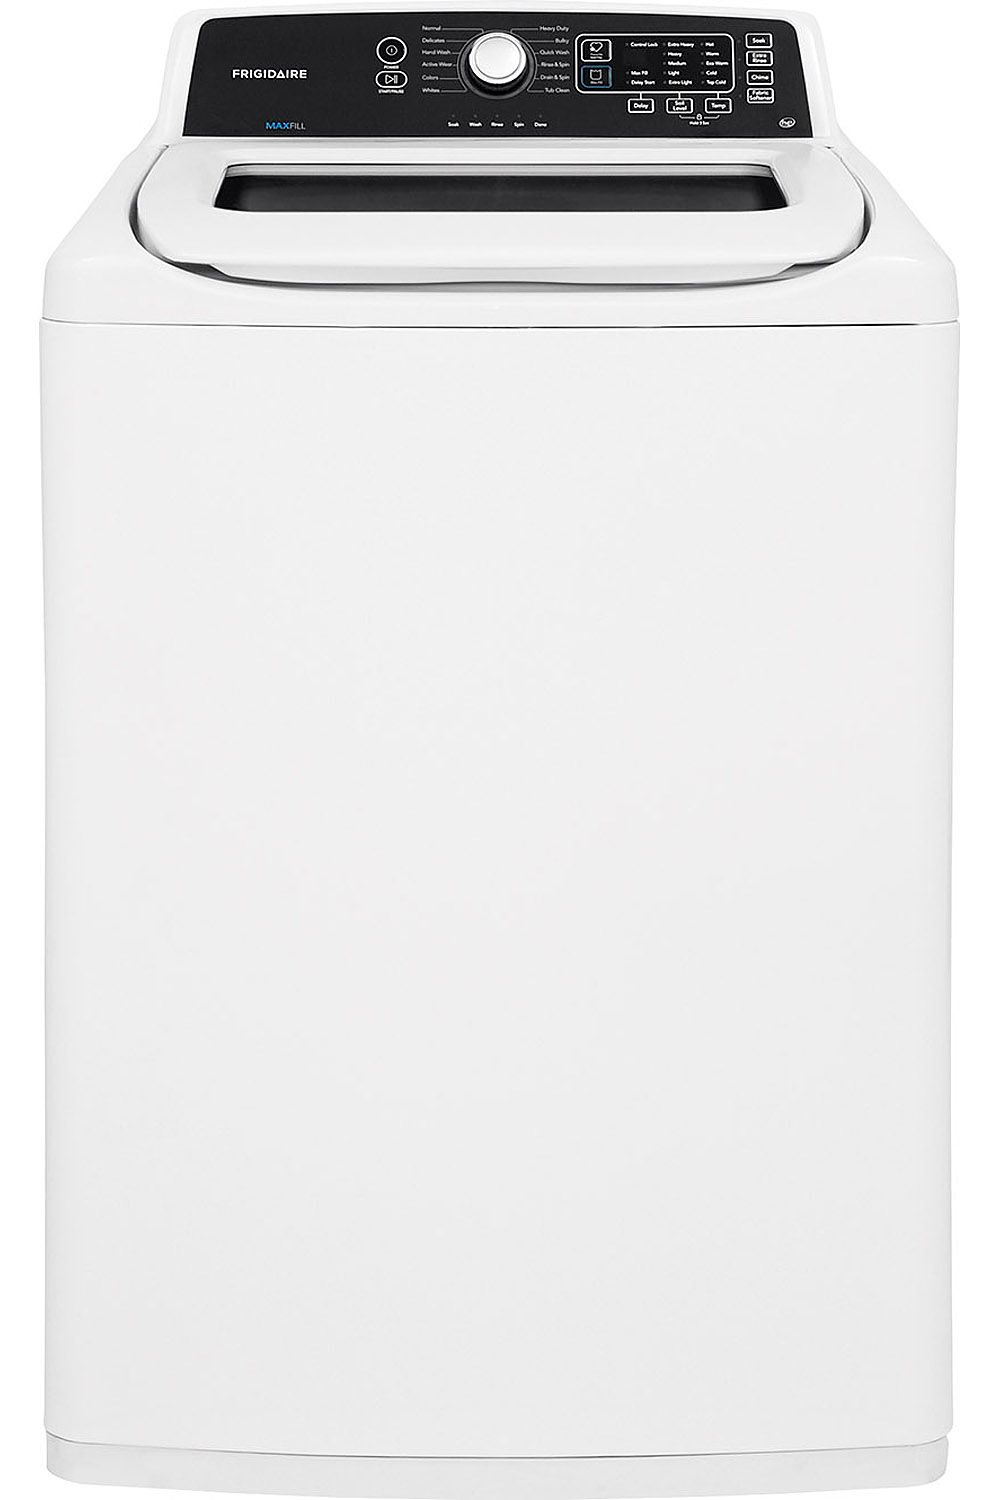 frigidaire white top load washer fftw4120sw. Black Bedroom Furniture Sets. Home Design Ideas